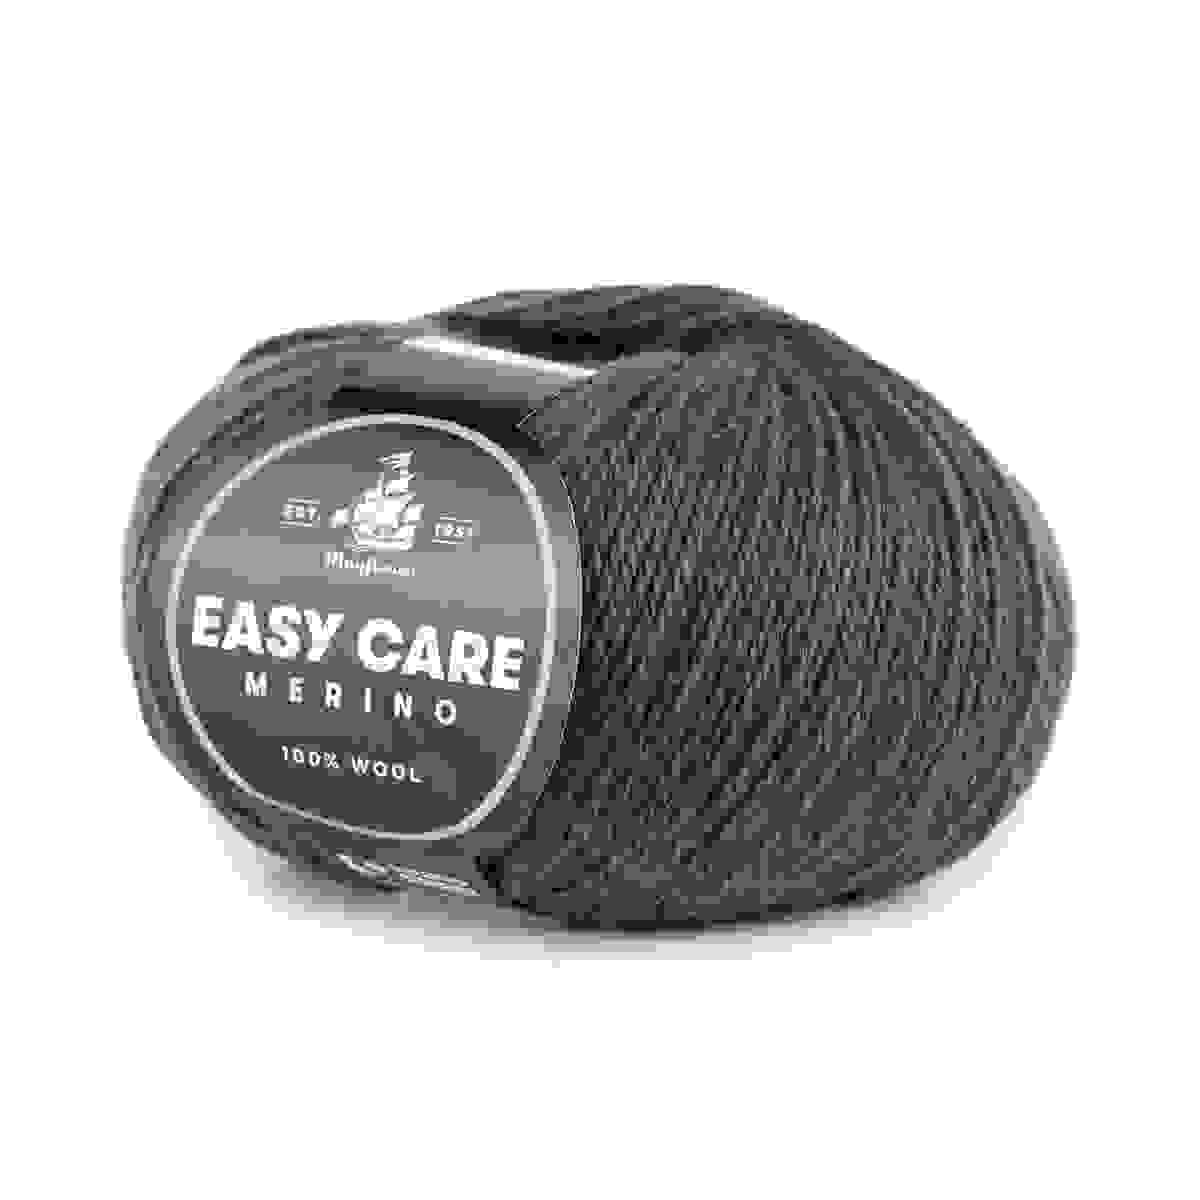 Easy Care 35 - Orinon Blue